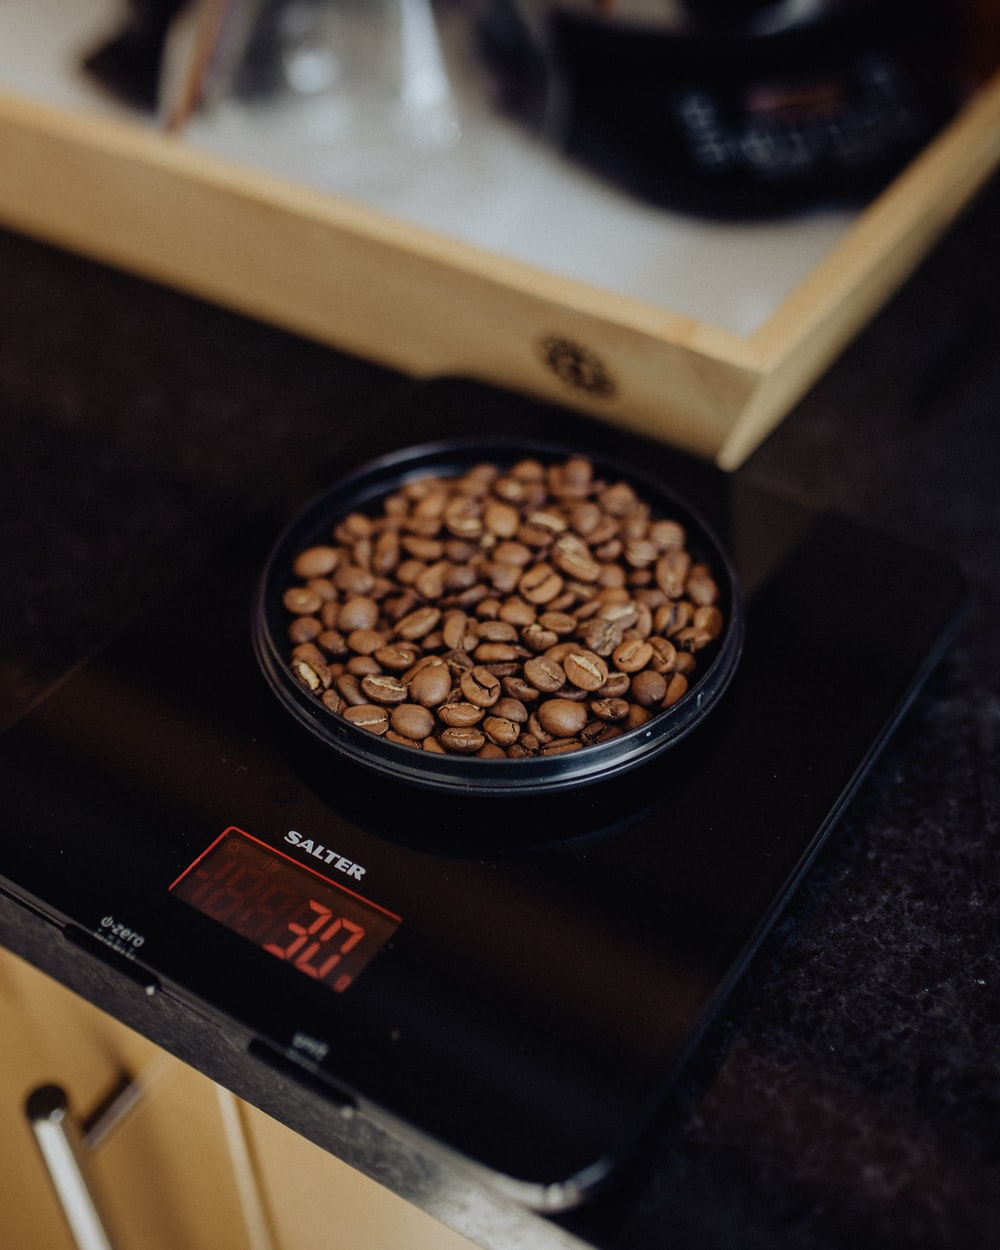 brown round container on black digital weighing scale